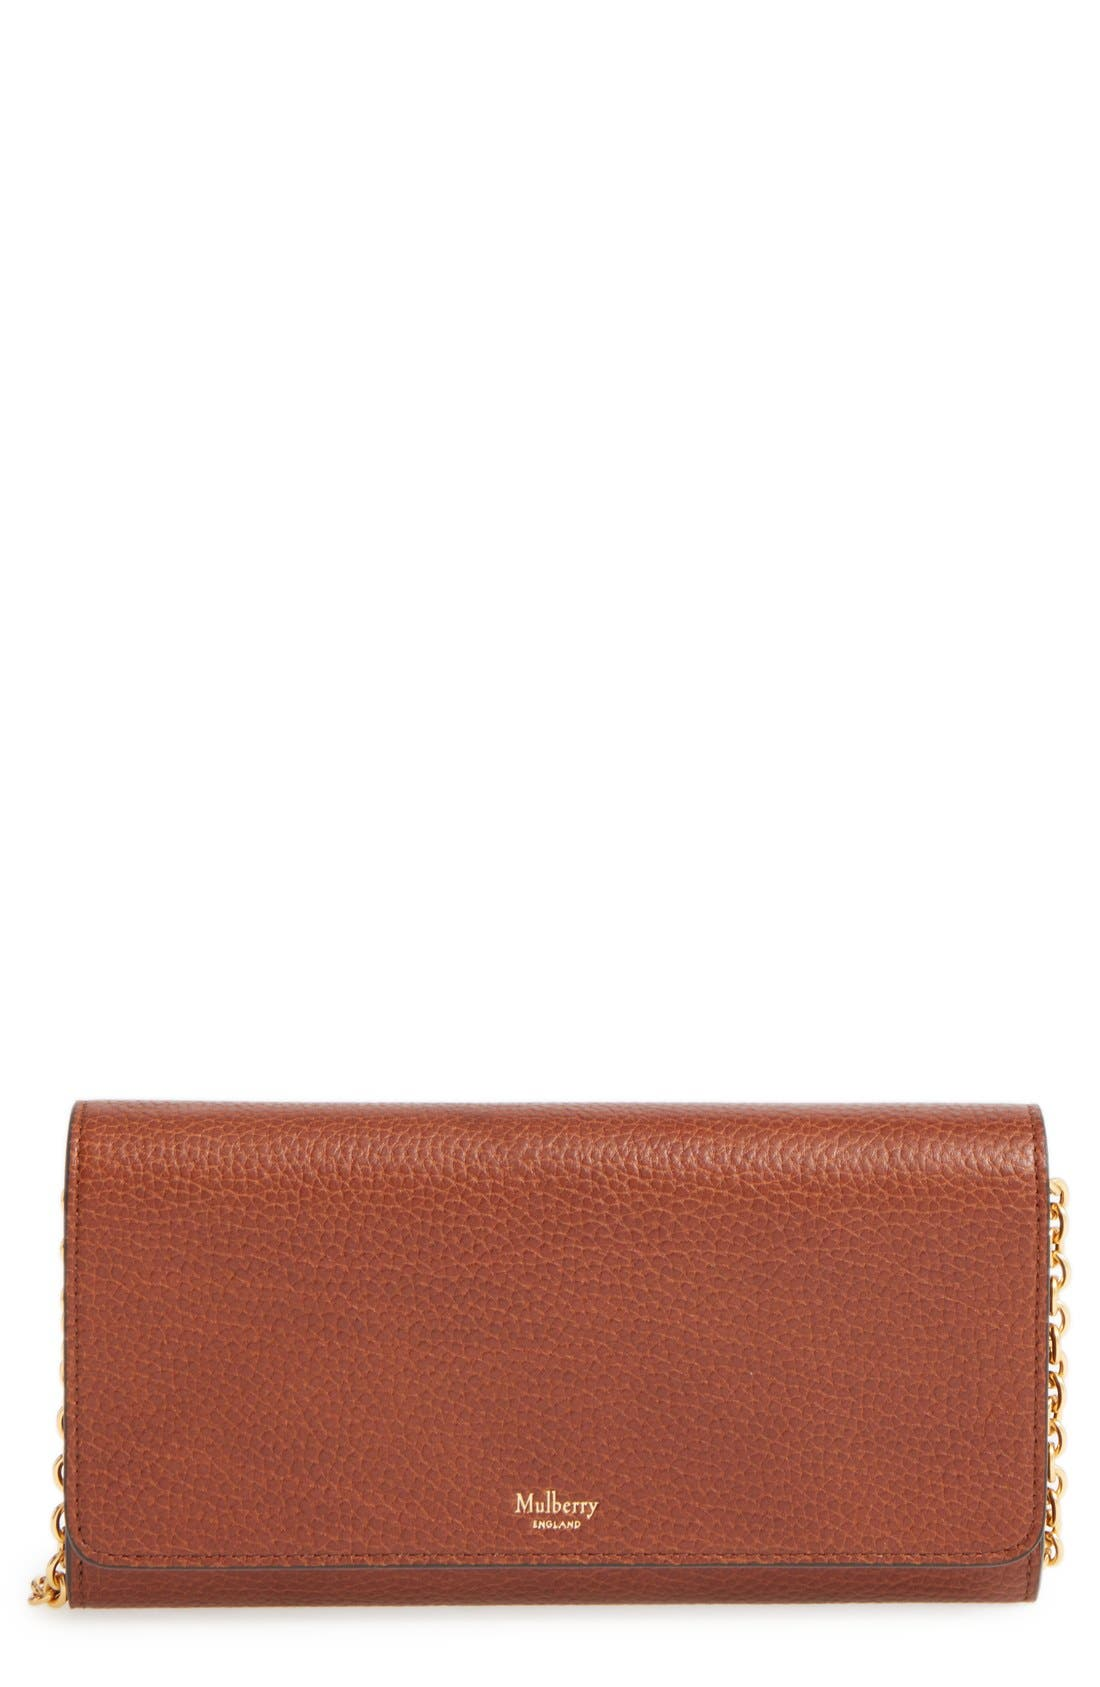 'Continental - Classic' Convertible Leather Clutch,                             Main thumbnail 1, color,                             200